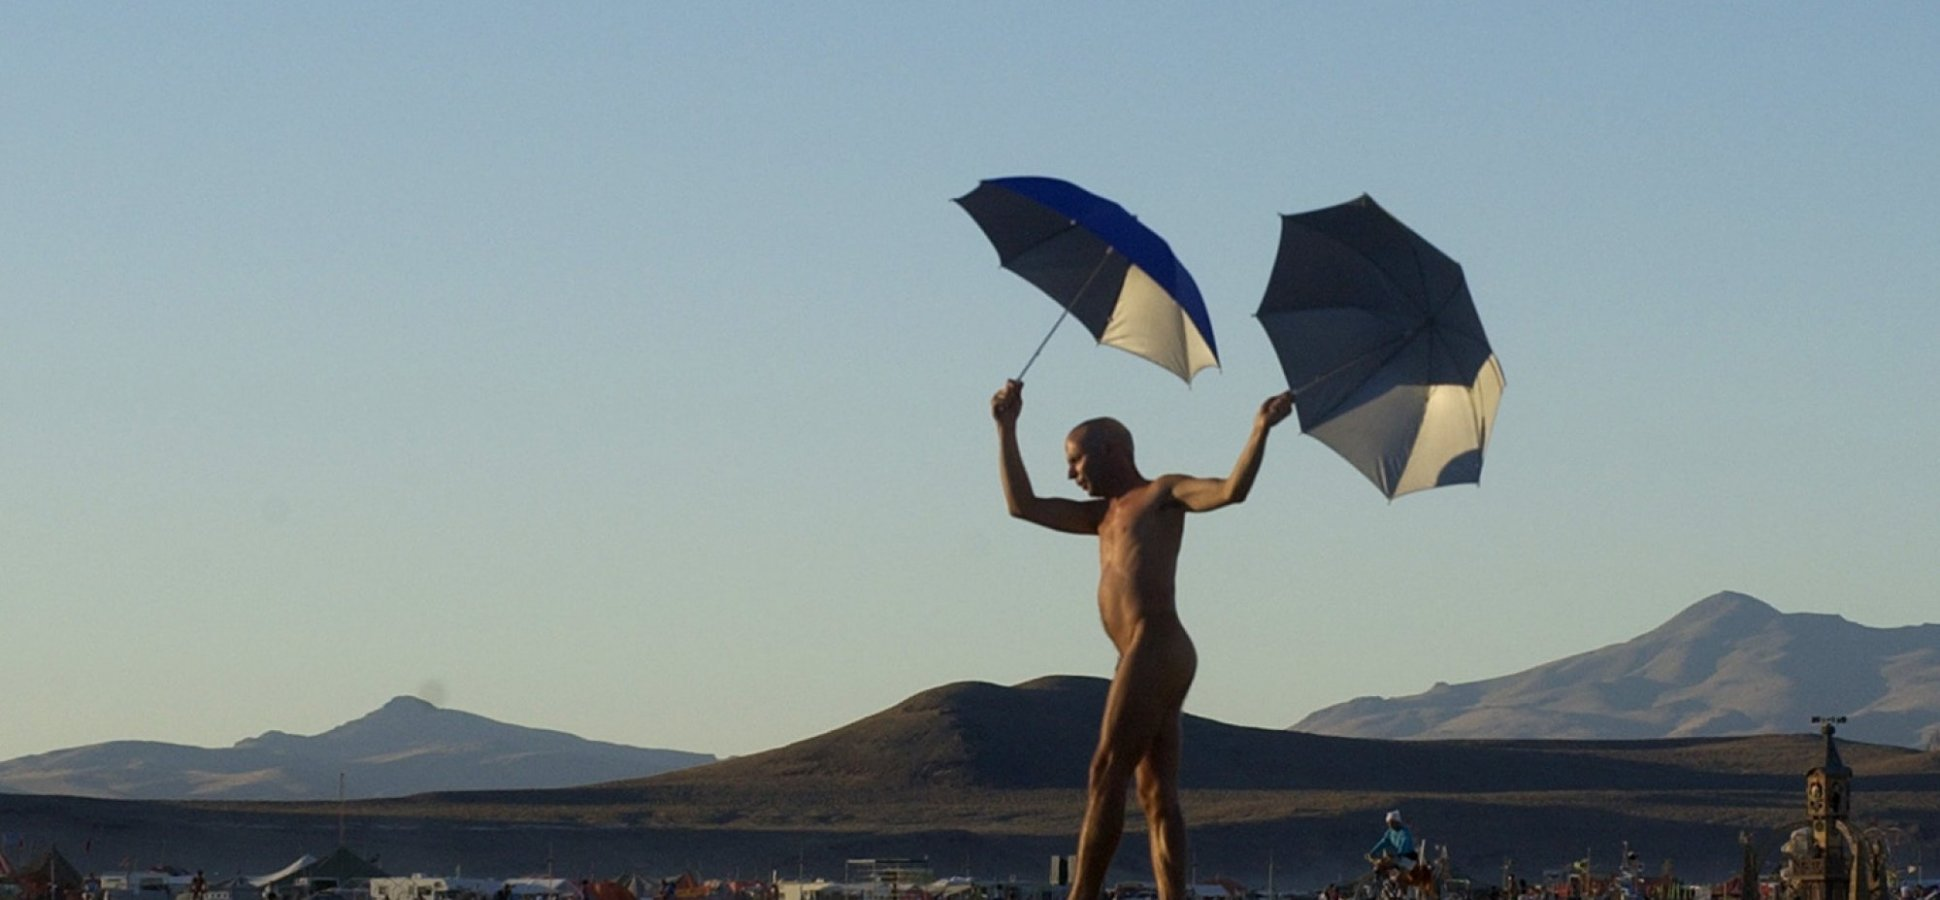 This Tech Founder Buys His Employees Tickets to Burning Man. Here's Why.